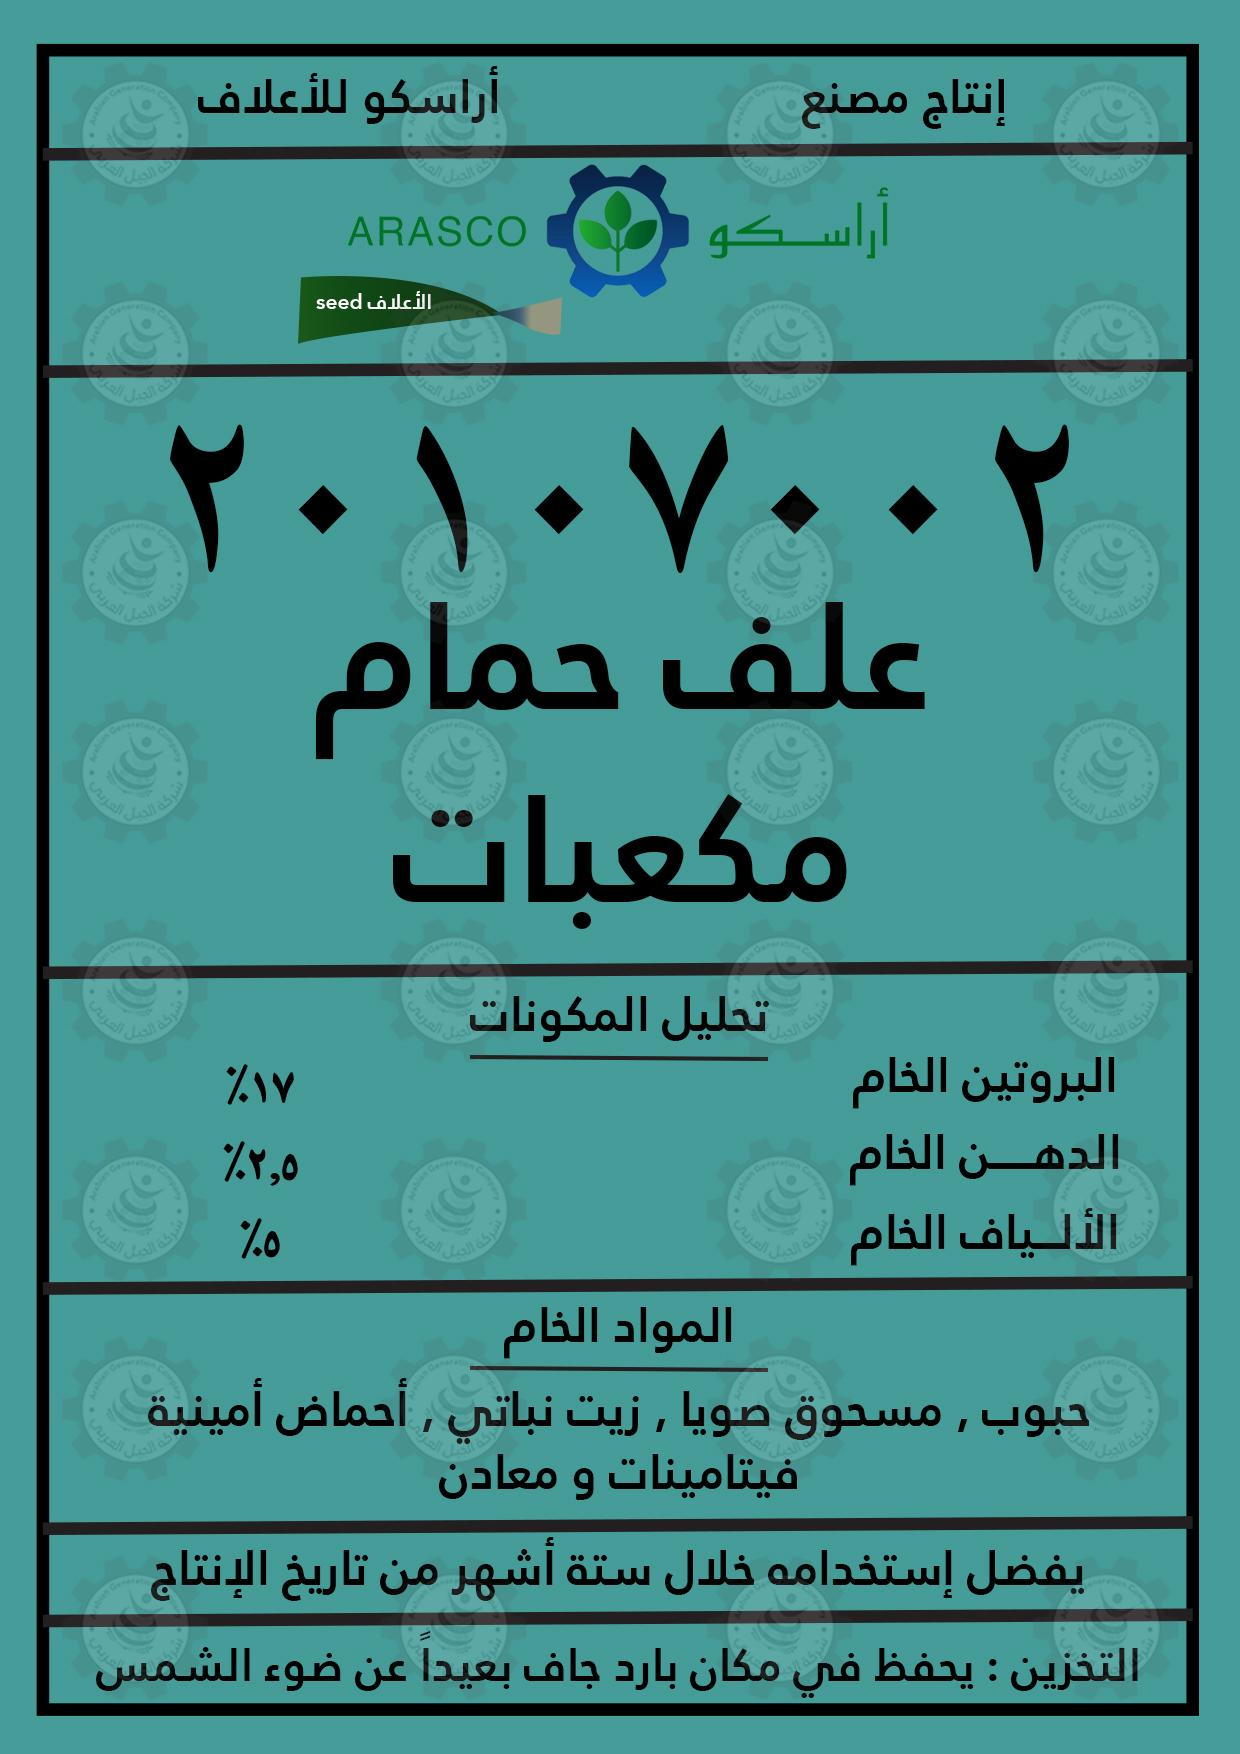 special offer from Arabian Generation d.php?hash=VLKFPEUJI